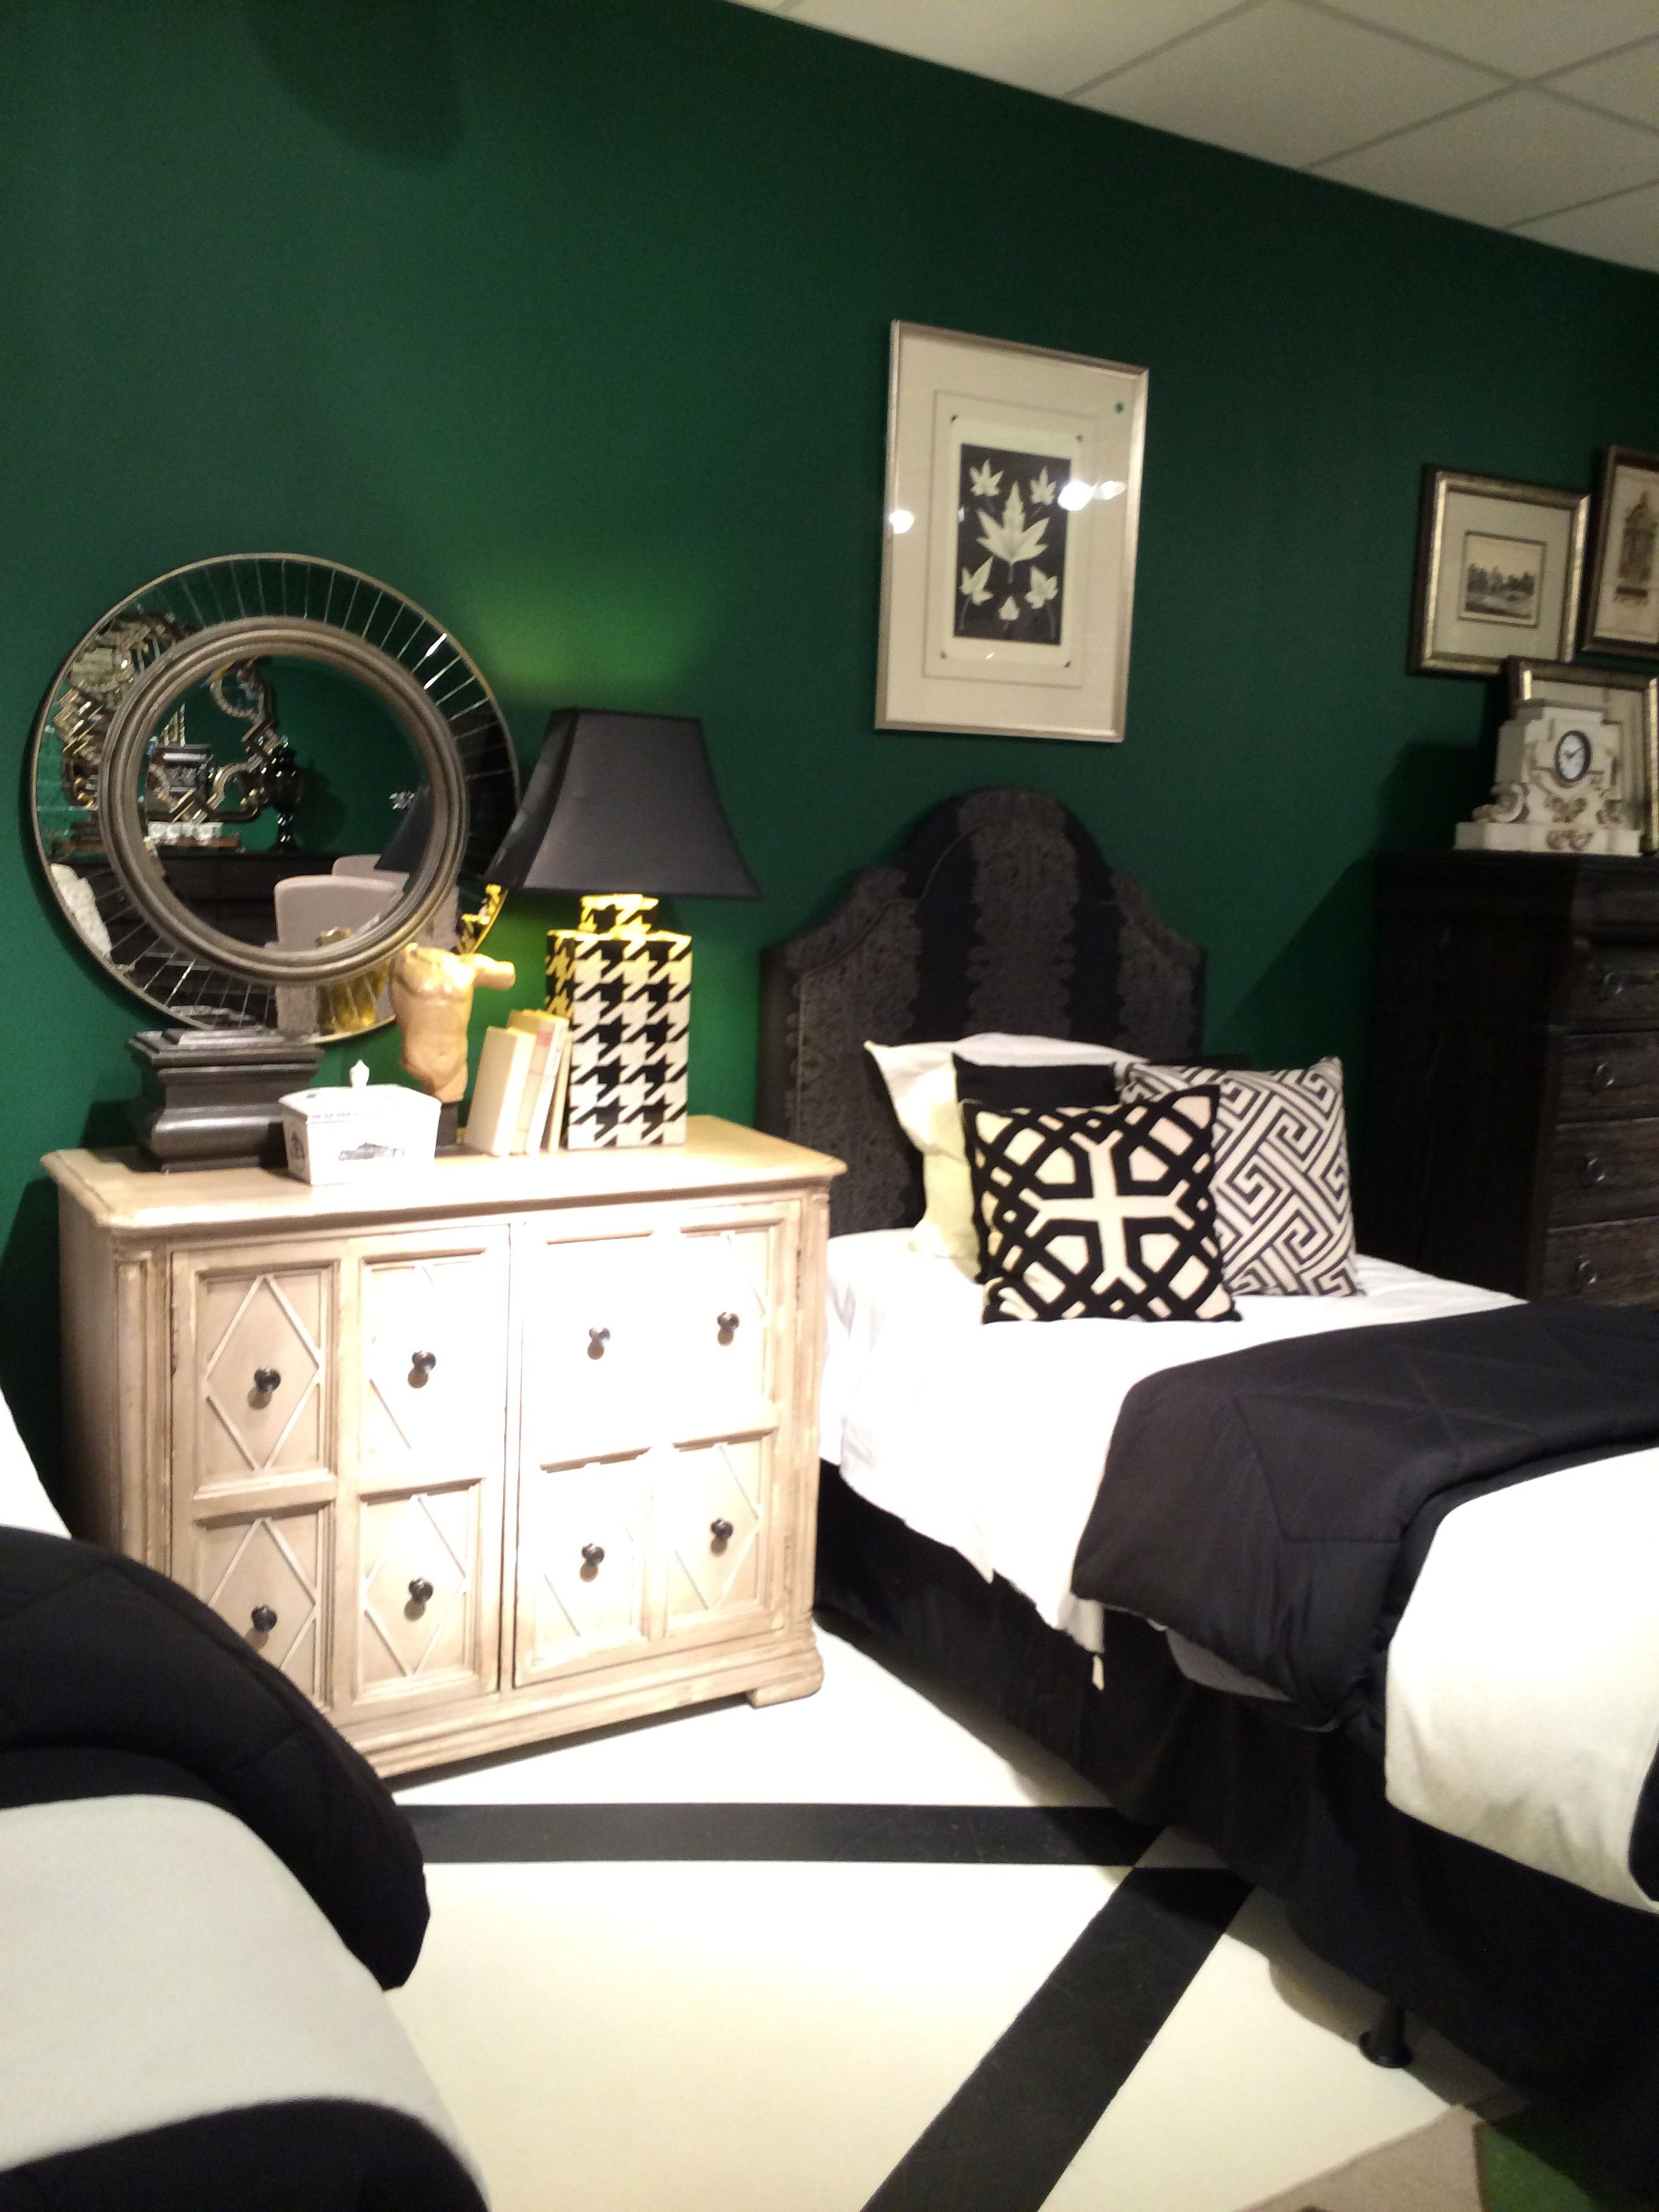 British racing green walls nicely contrast with the white Green and black bedroom